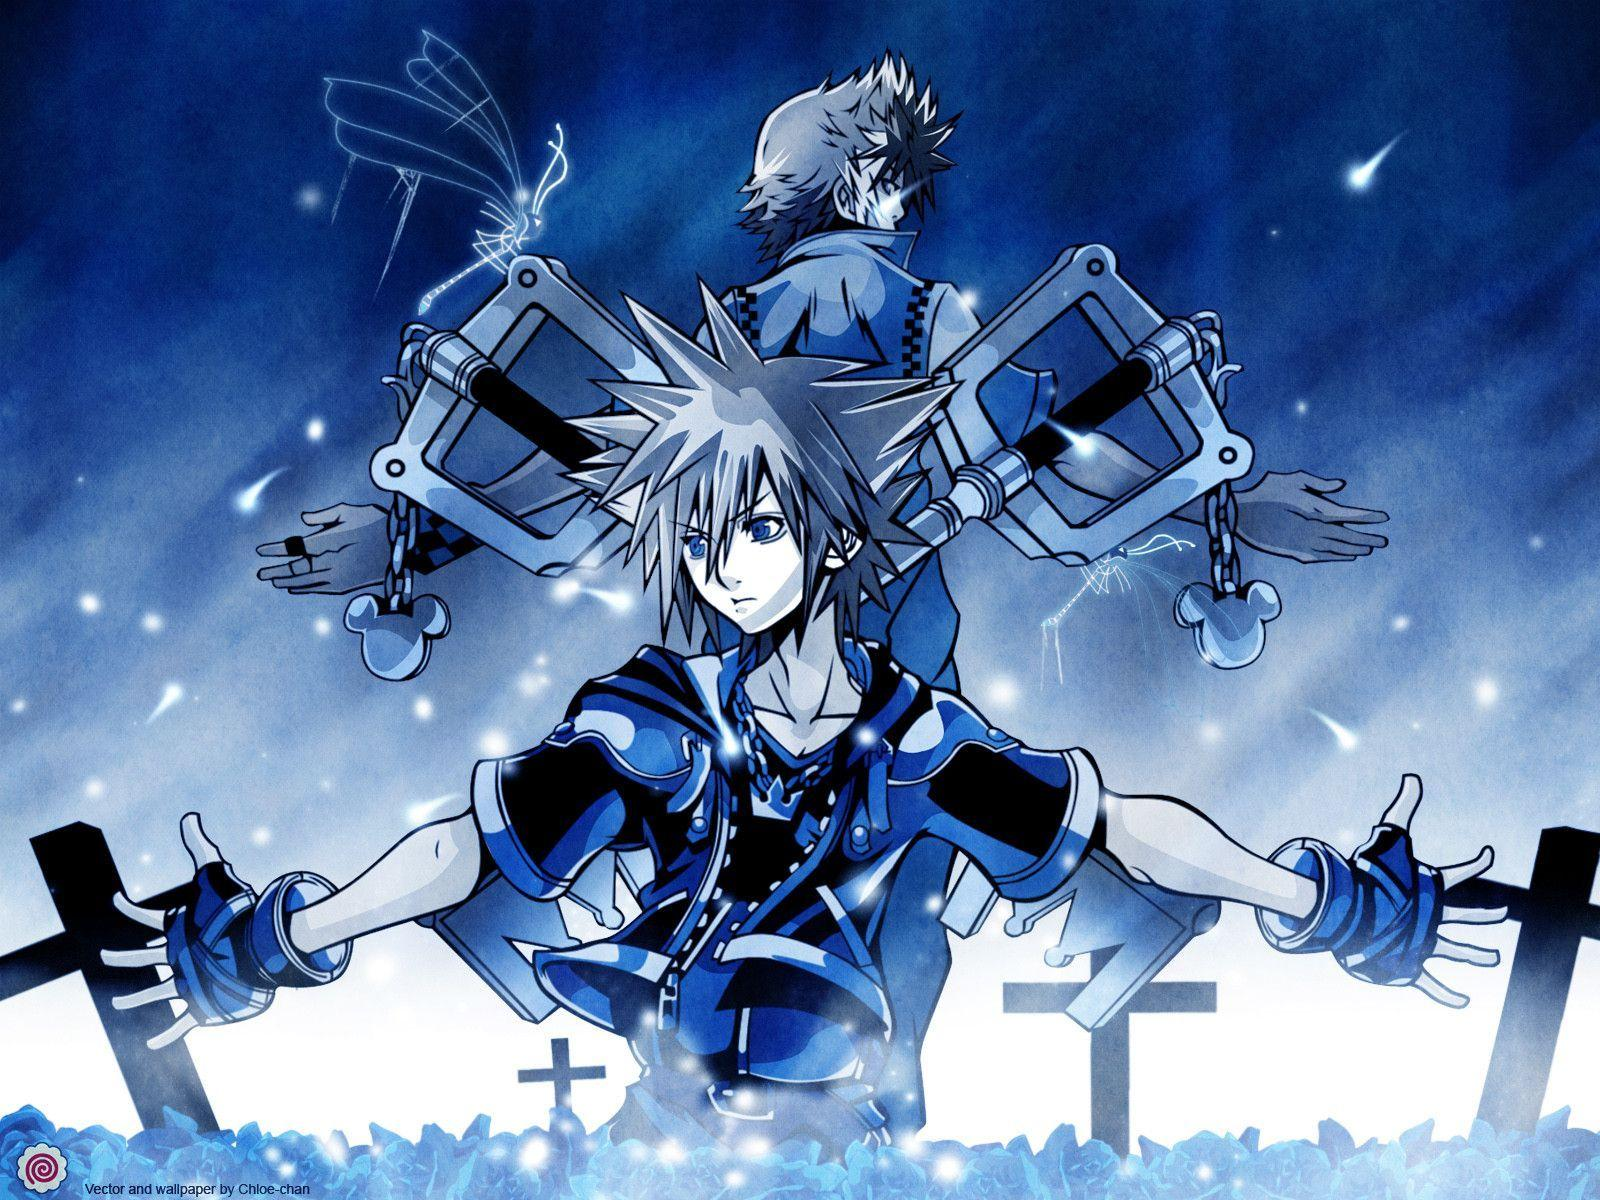 Wallpapers For > Kingdom Hearts Wallpapers Hd Iphone